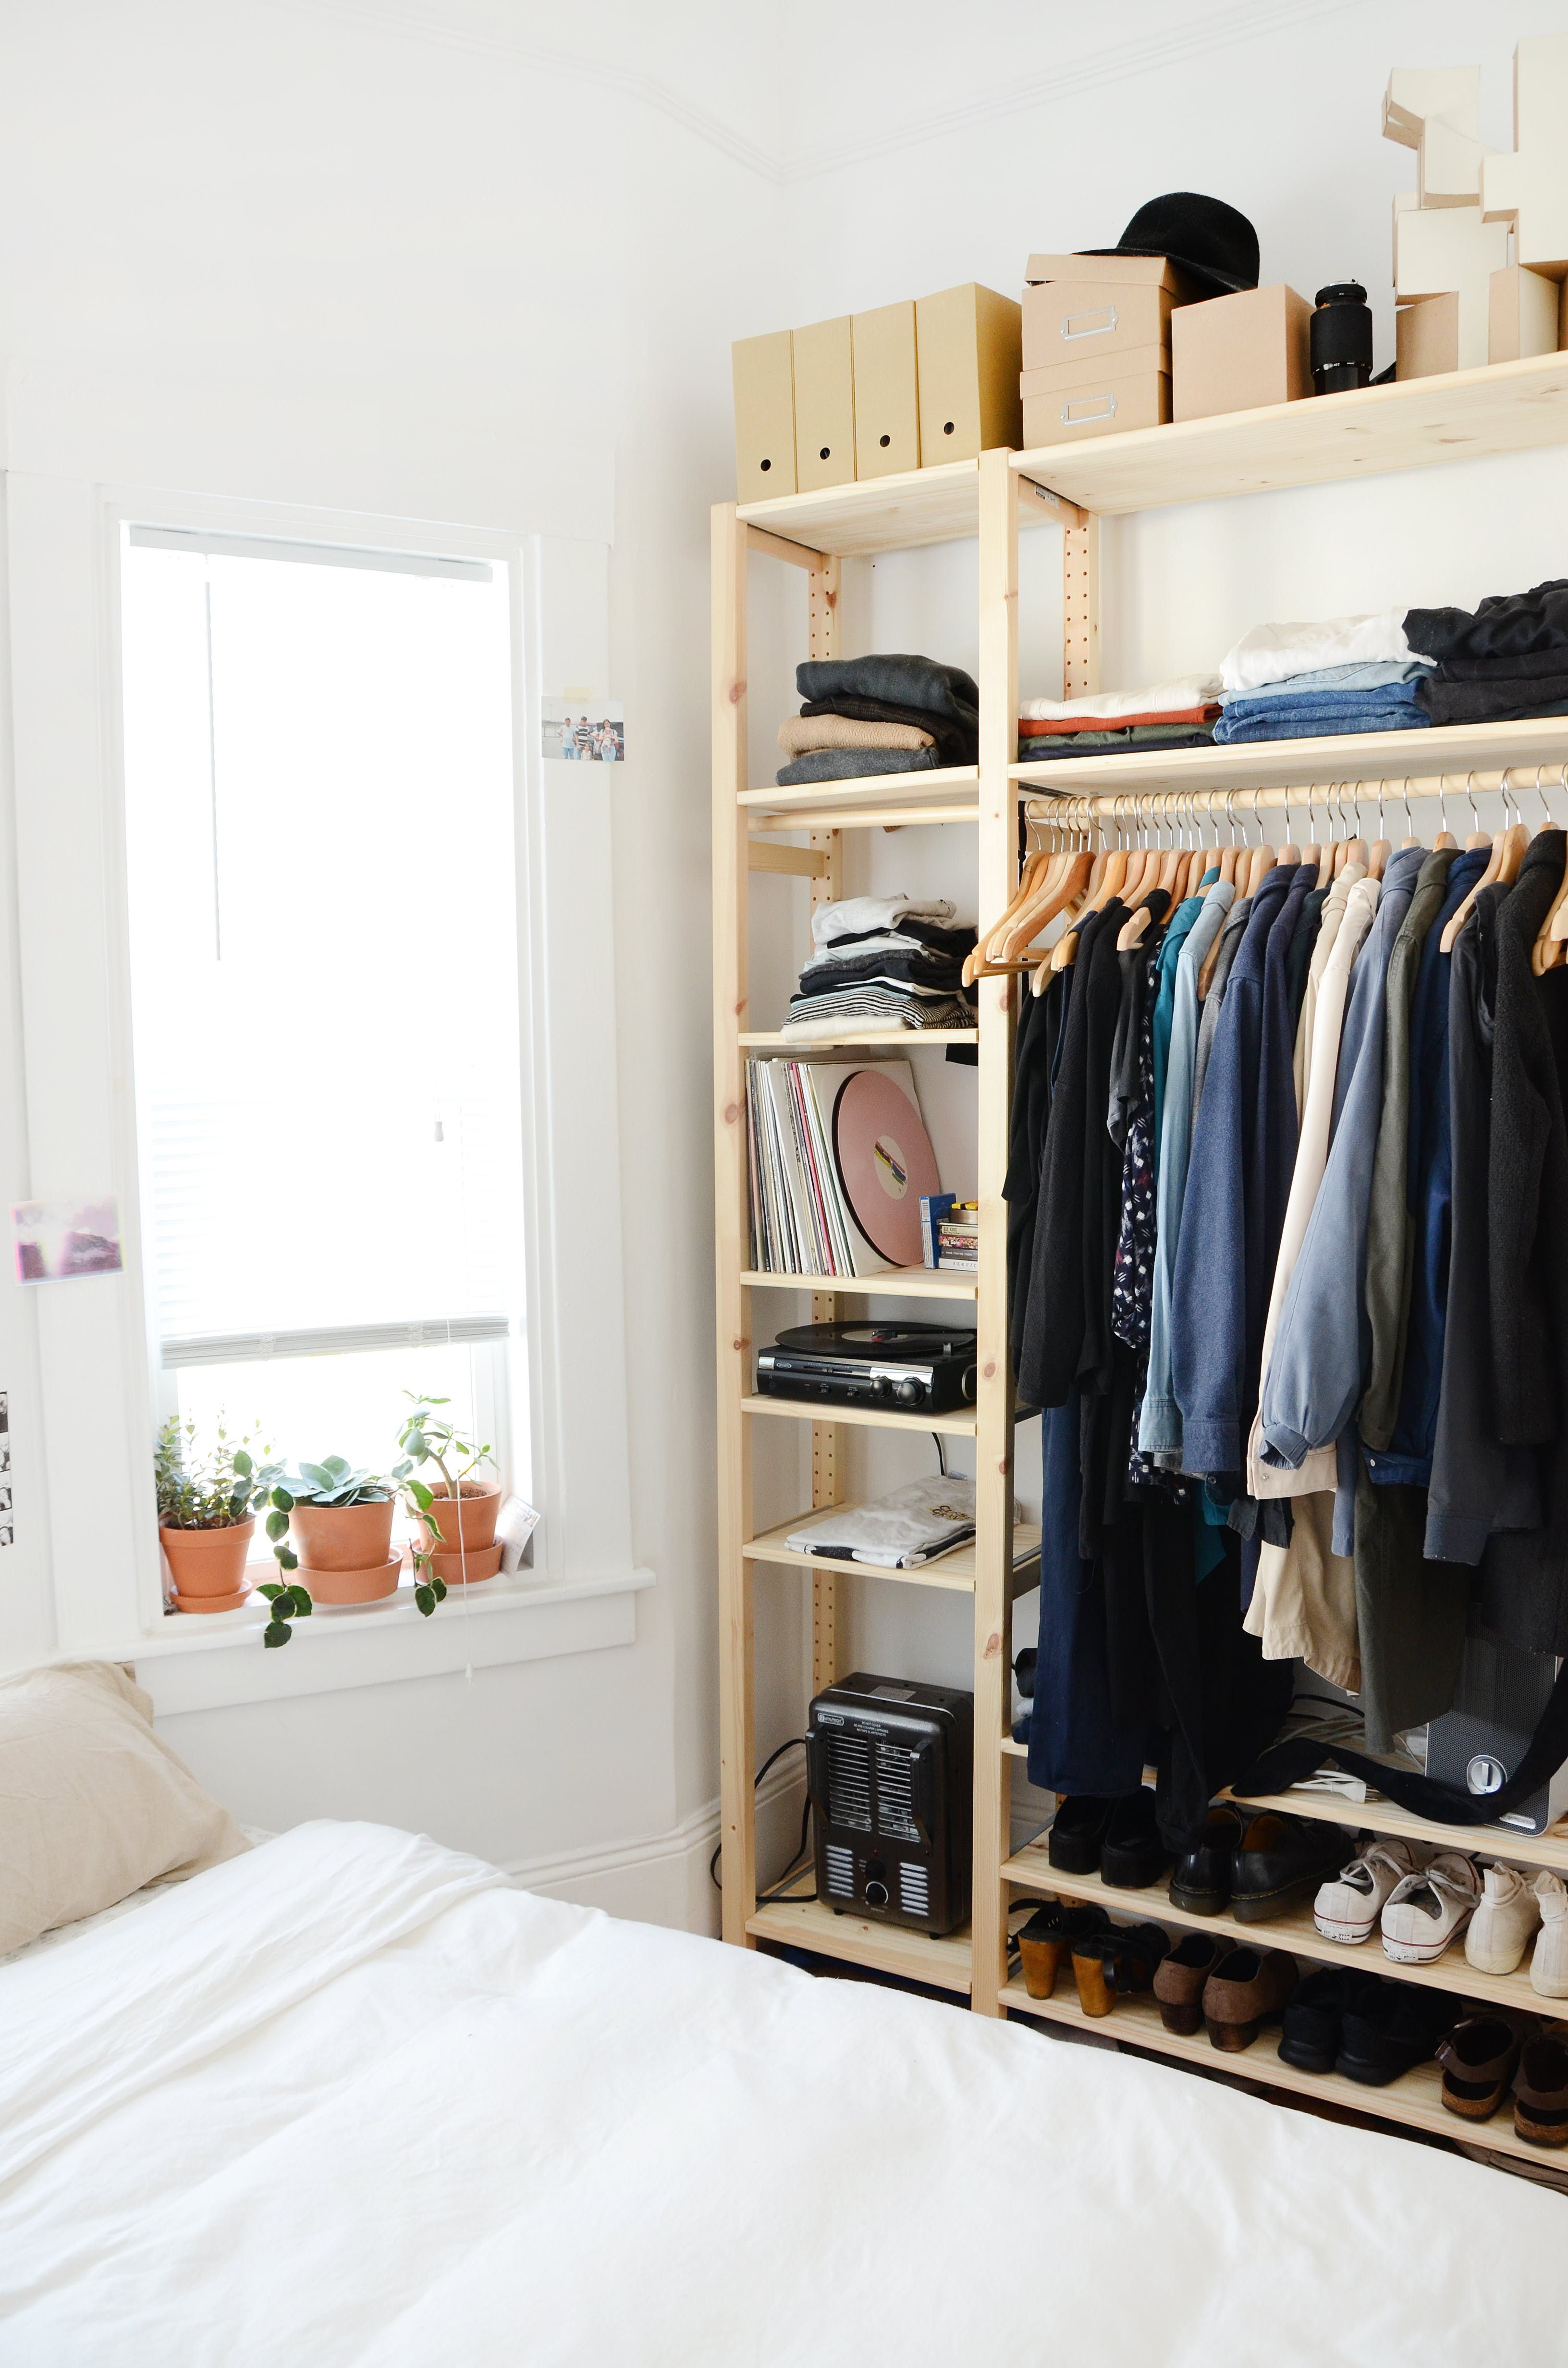 5 Roommates 0 Closets And Lots Of Clever Storage Solutions In San Francisco No Closet Solutions Small Closet Space Bedroom Storage